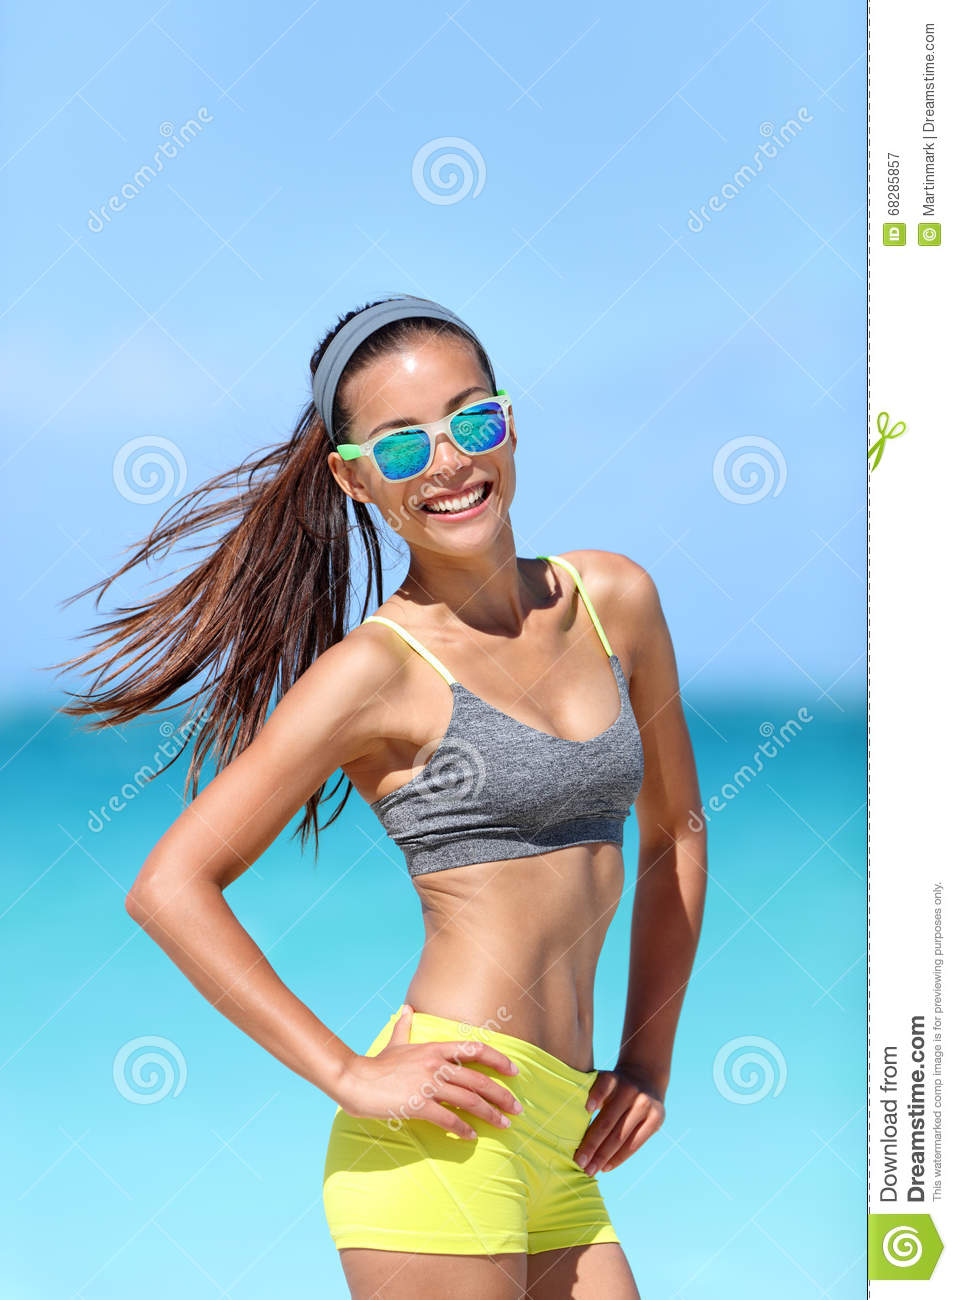 247b56d5da37 Happy Fit Beach Girl Wearing Sunglasses In Fitness Sportswear Stock ...